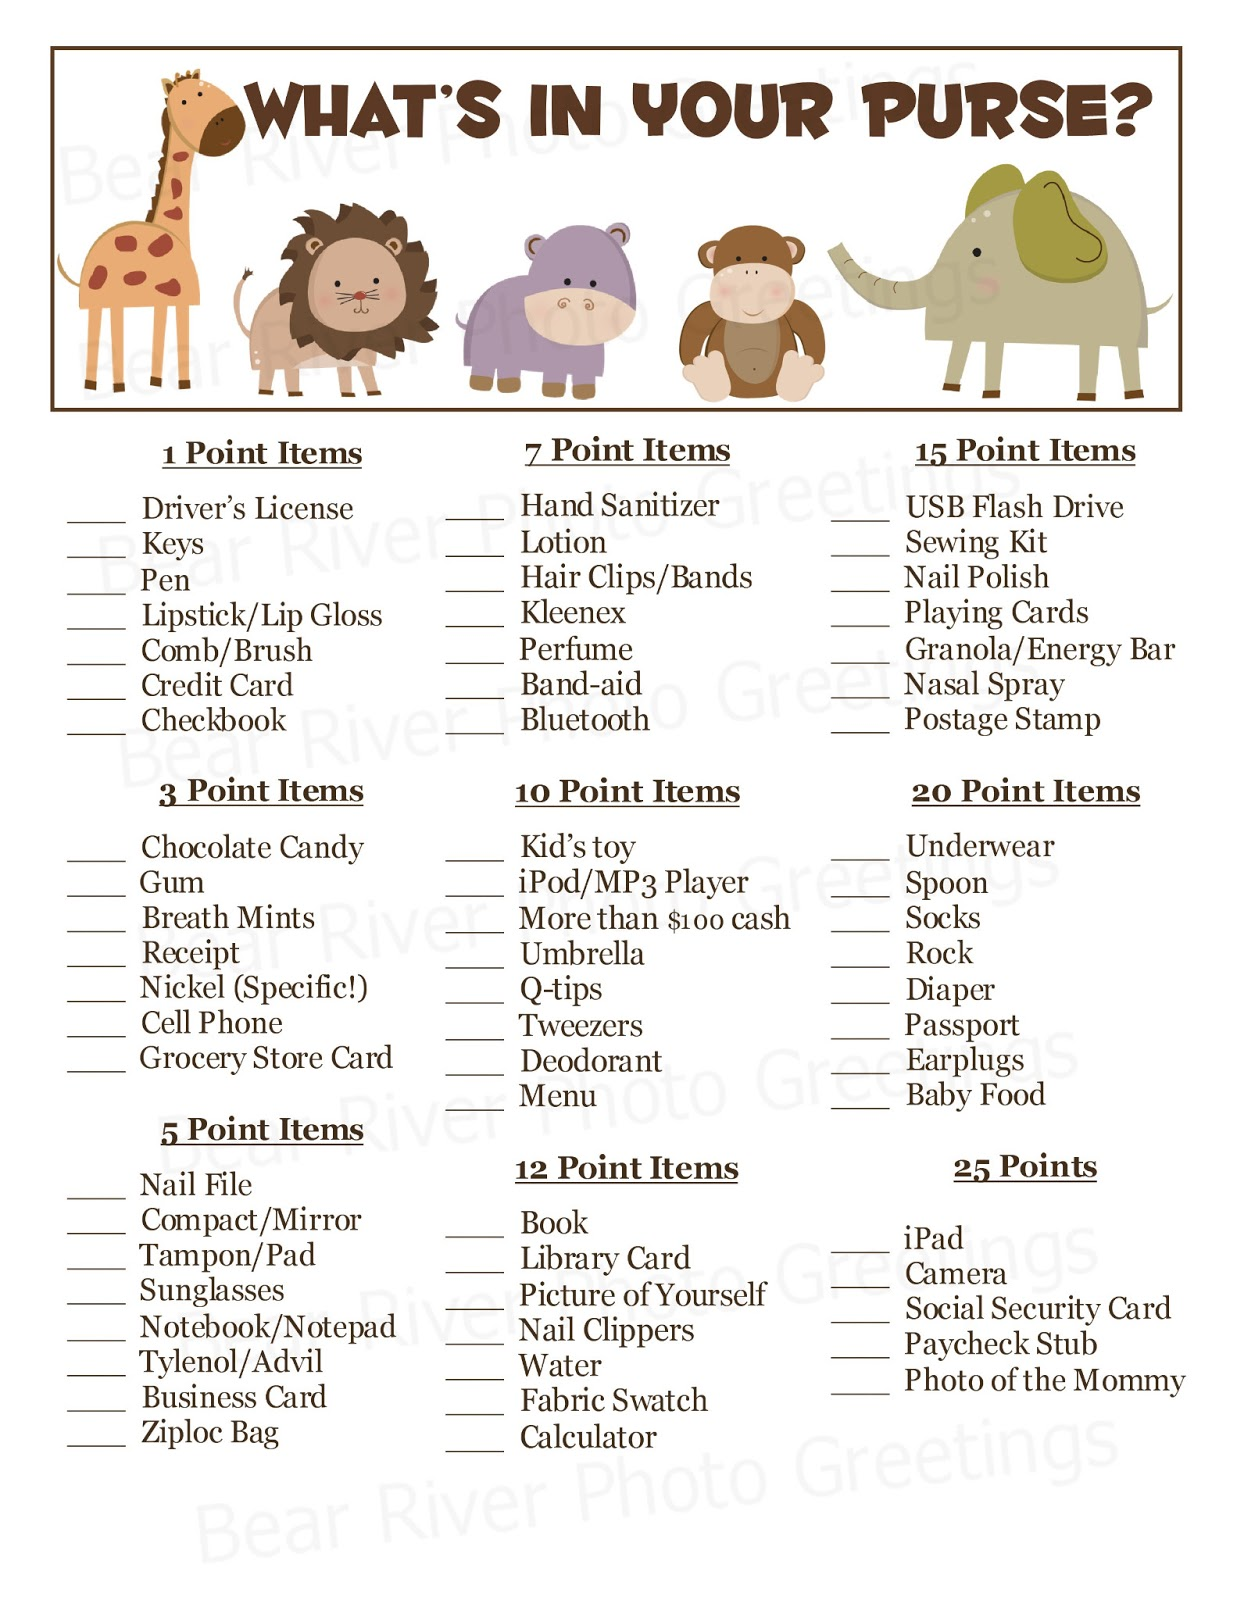 Amazing image for what's in your purse printable